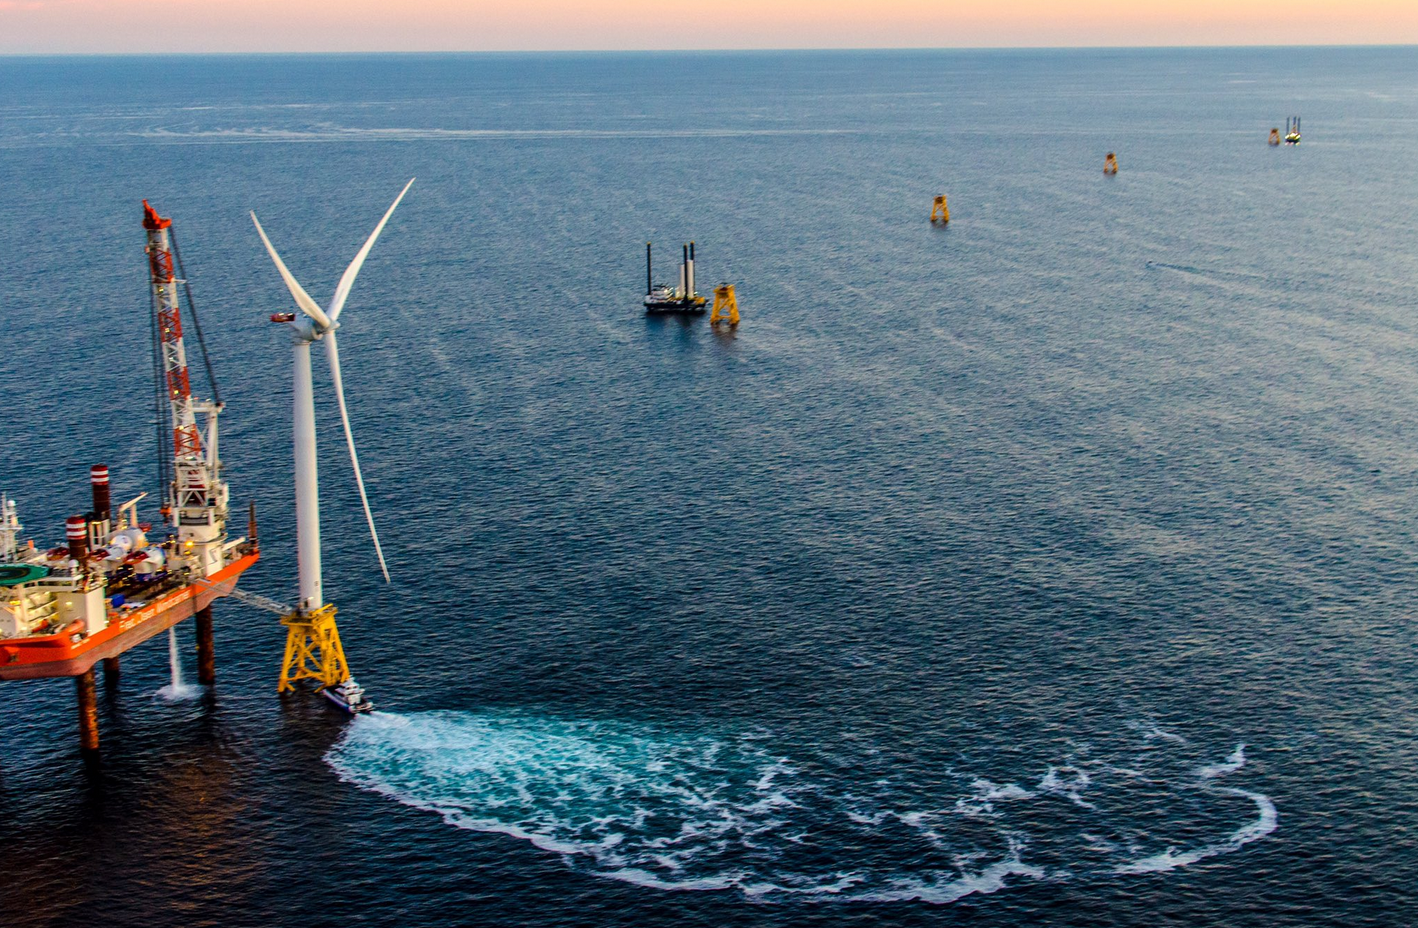 The first offshore wind turbine in the U.S., off the coast of Rhode Island.